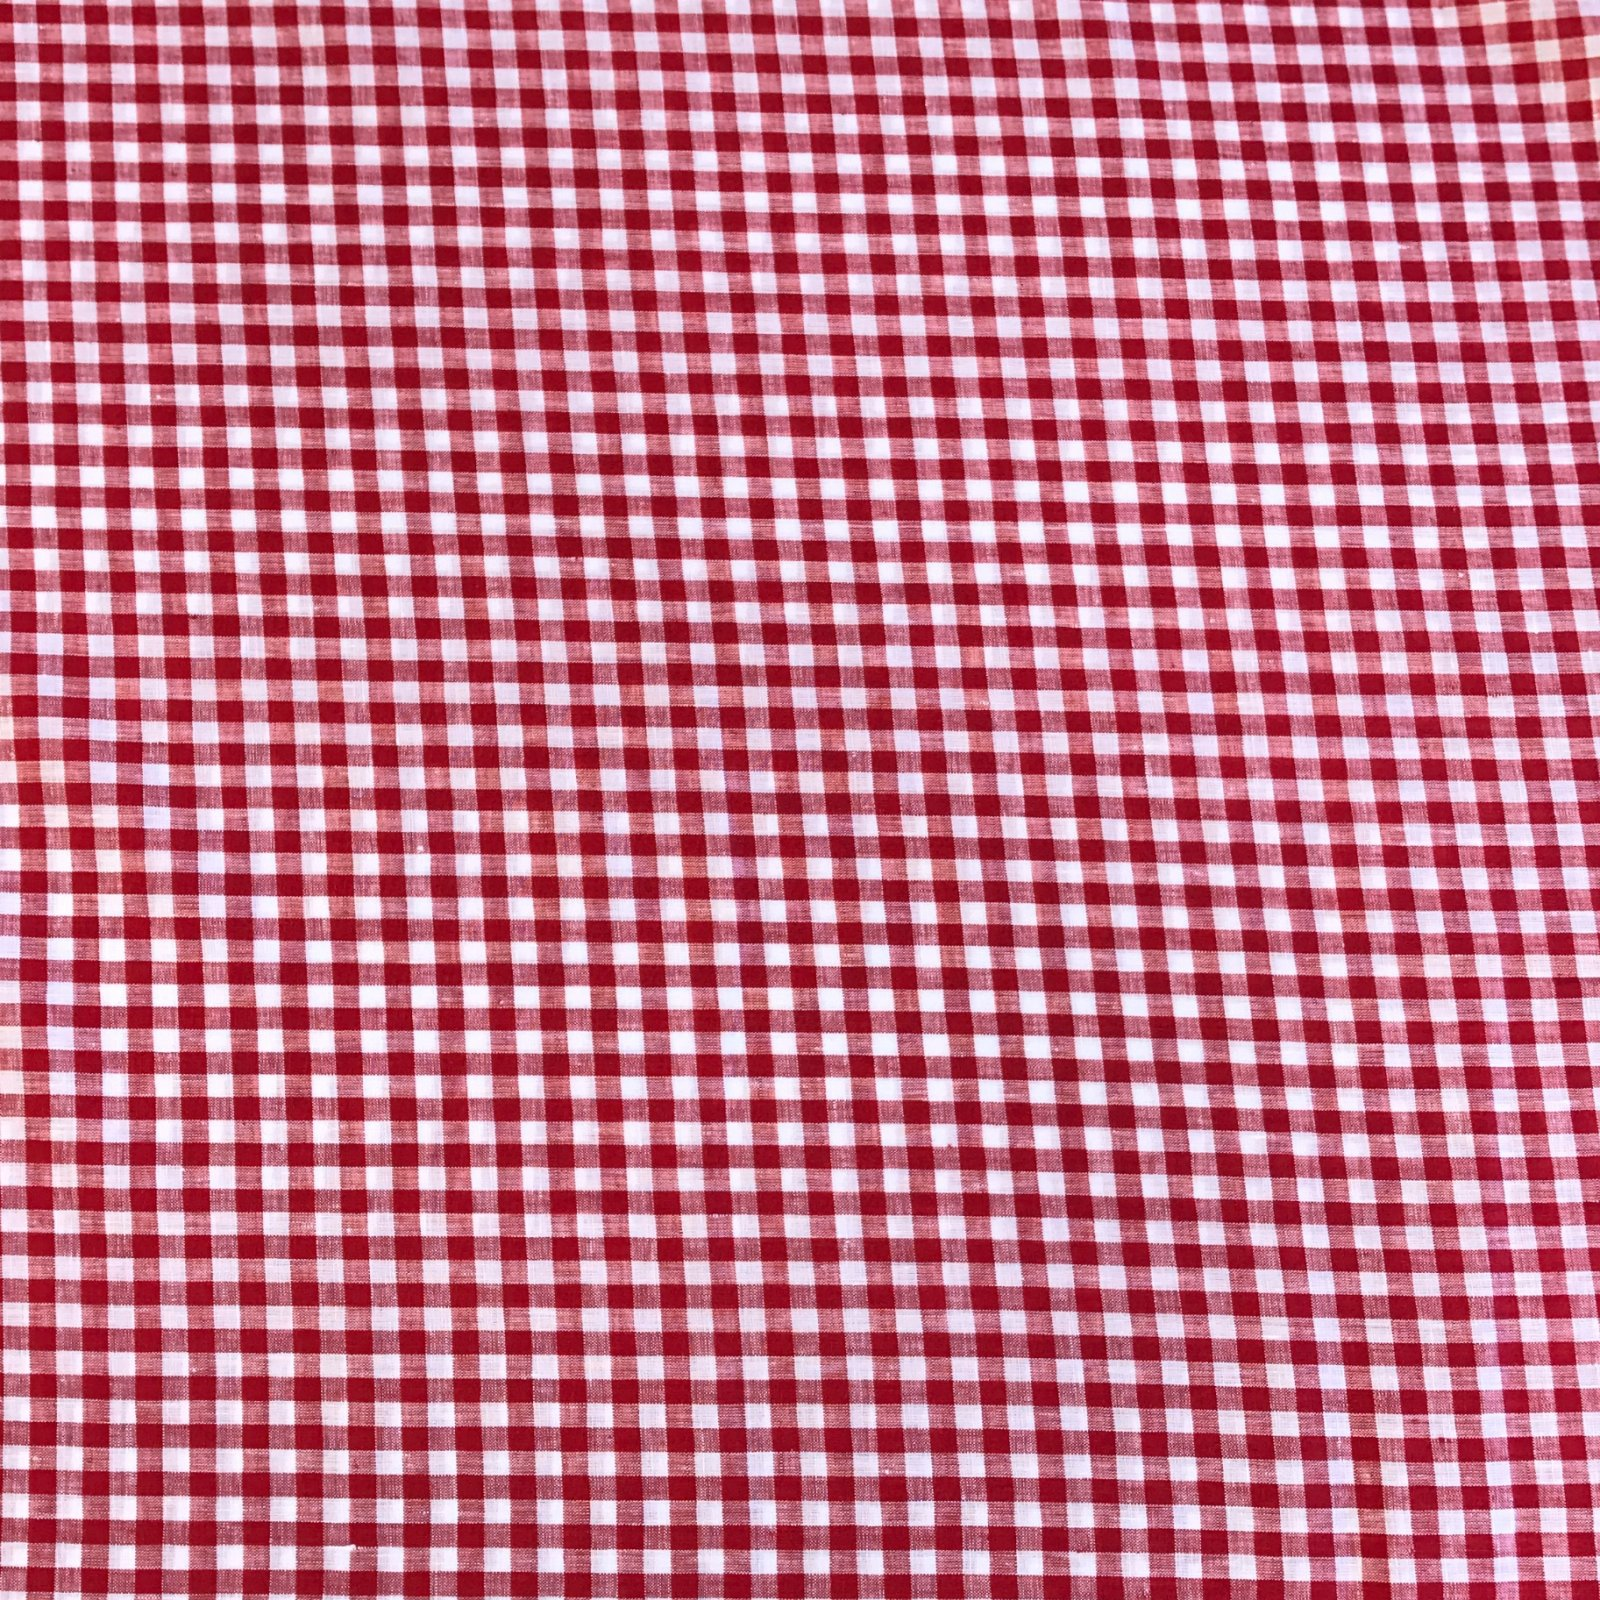 Linen Gingham Check - Red